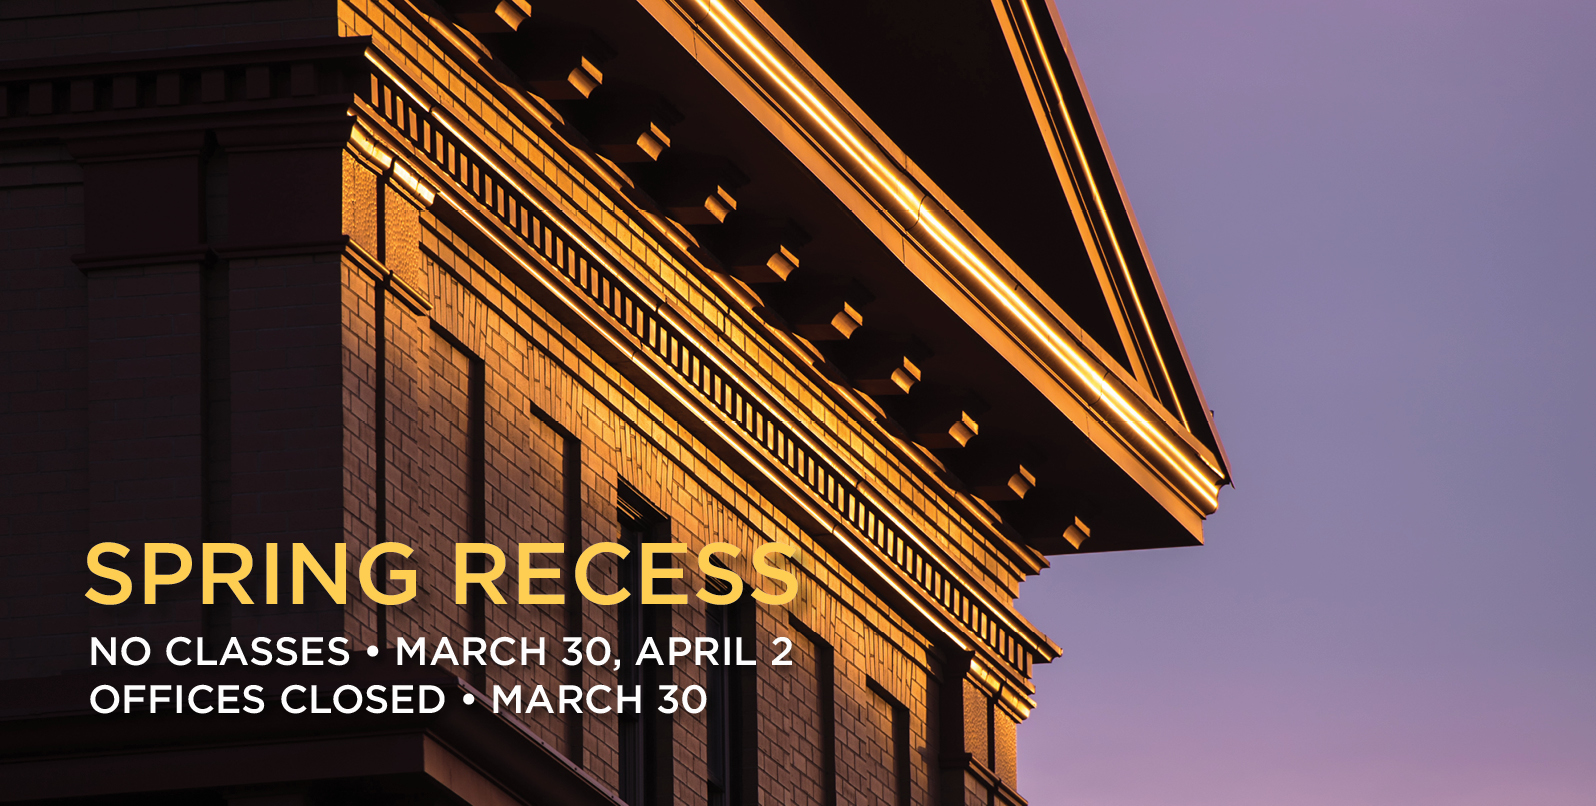 Spring Recess, no classes March 30 and April 2, offices closed April 2